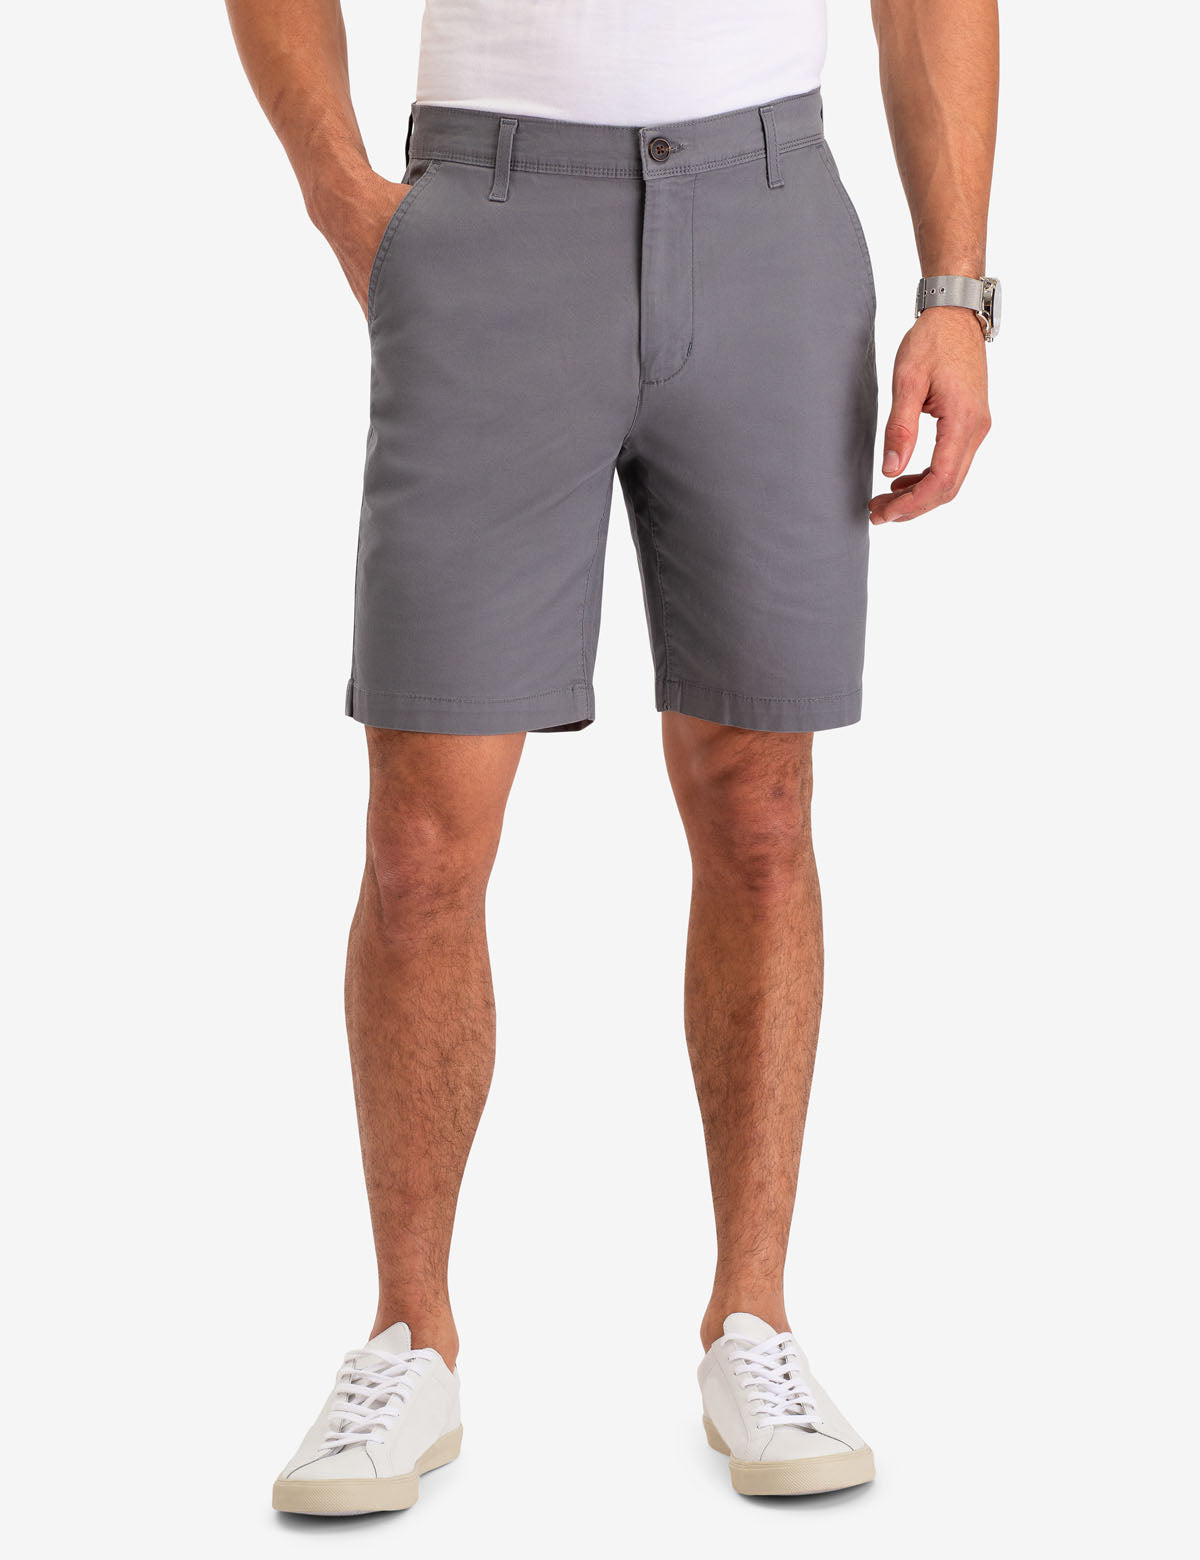 HARTFORD SHORTS - U.S. Polo Assn.